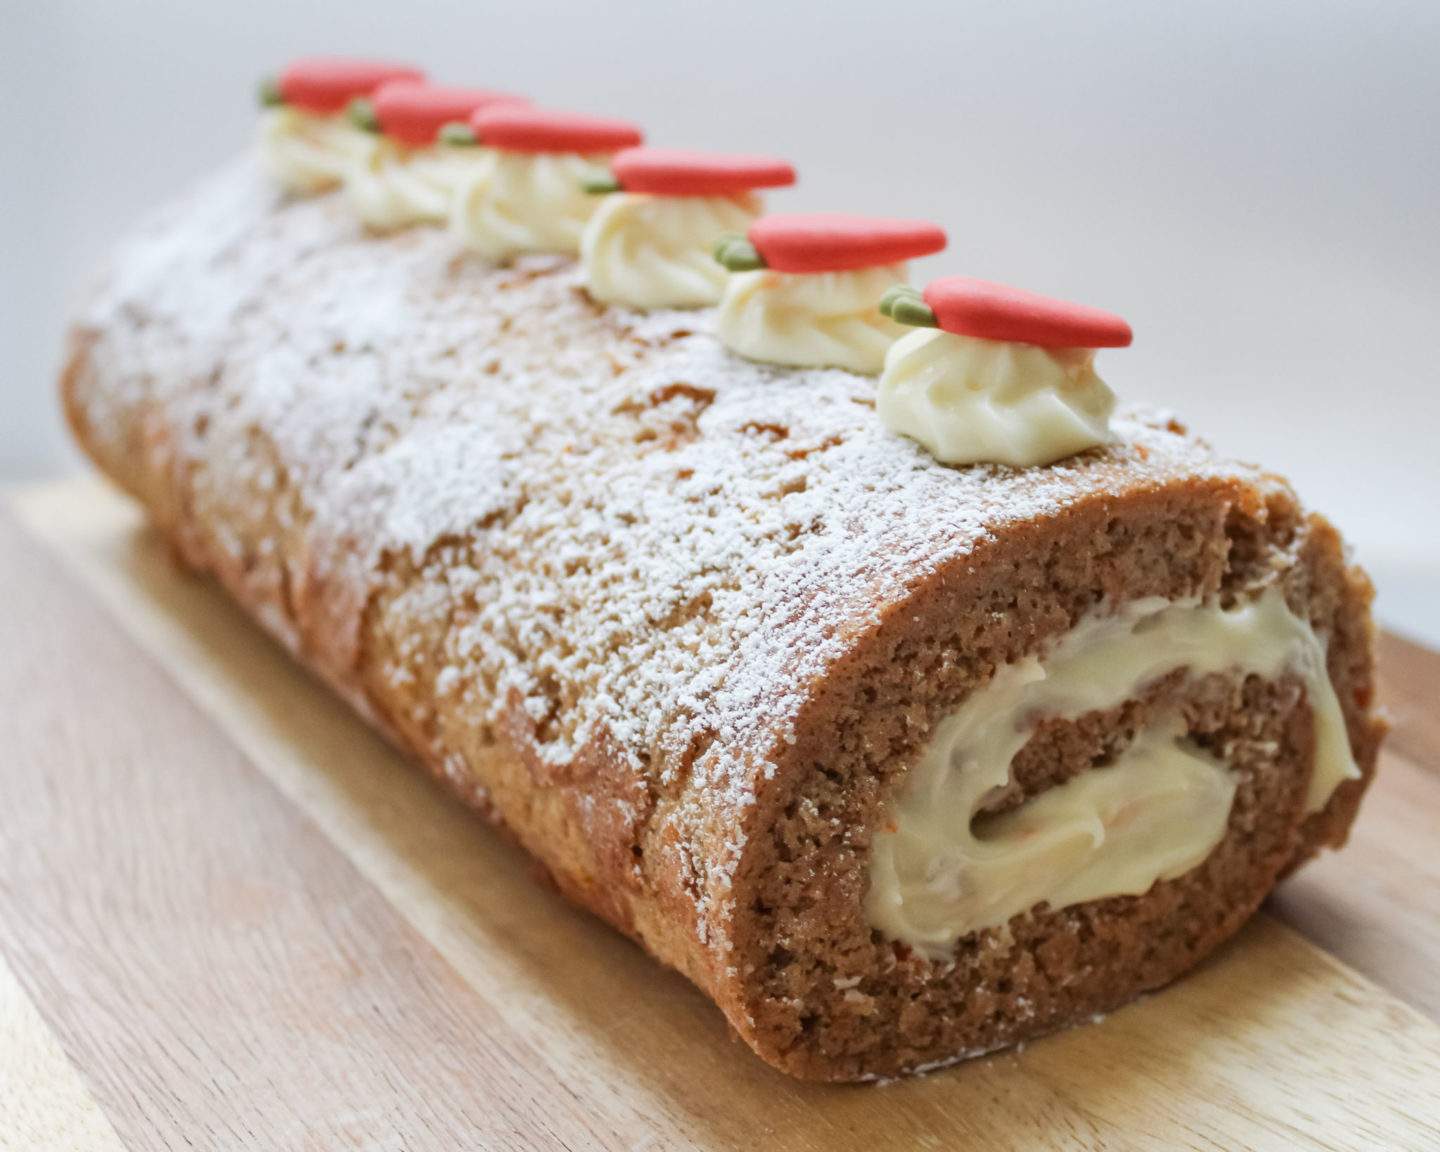 Fully decorated carrot cake Swiss roll with cream cheese frosting/icing